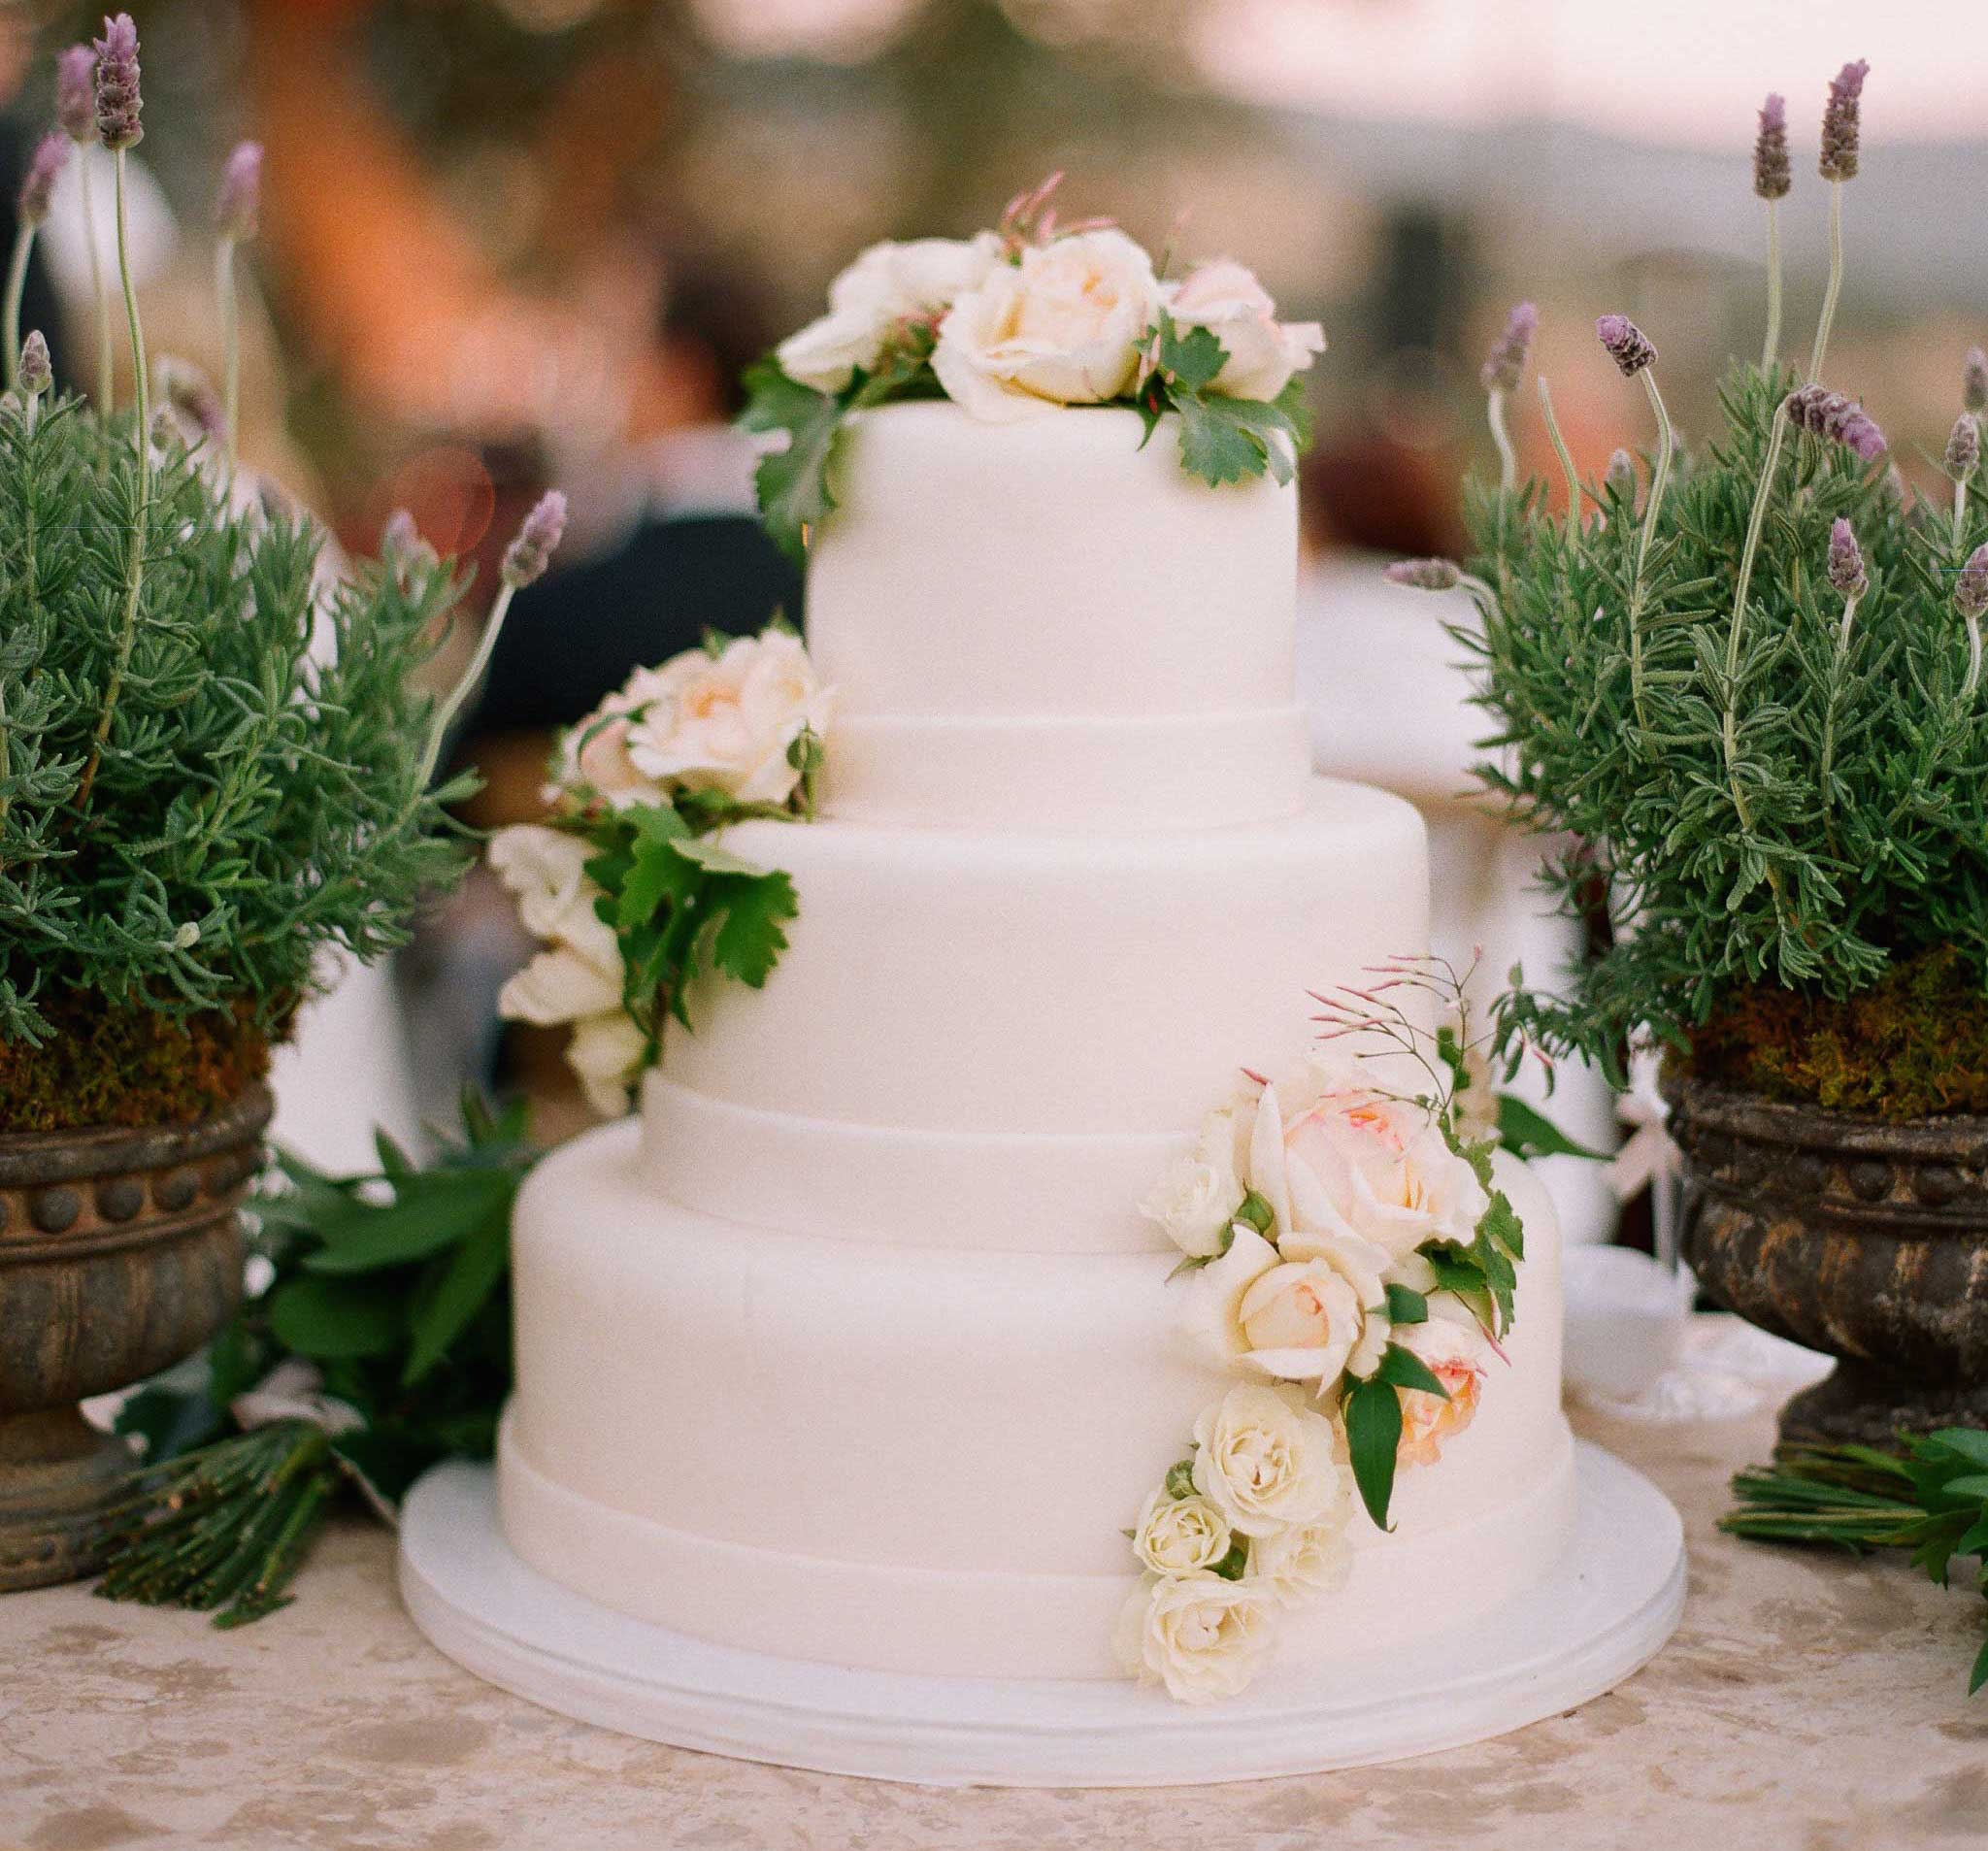 wedding cake decorations flowers wedding cake ideas small one two and three tier cakes 22401